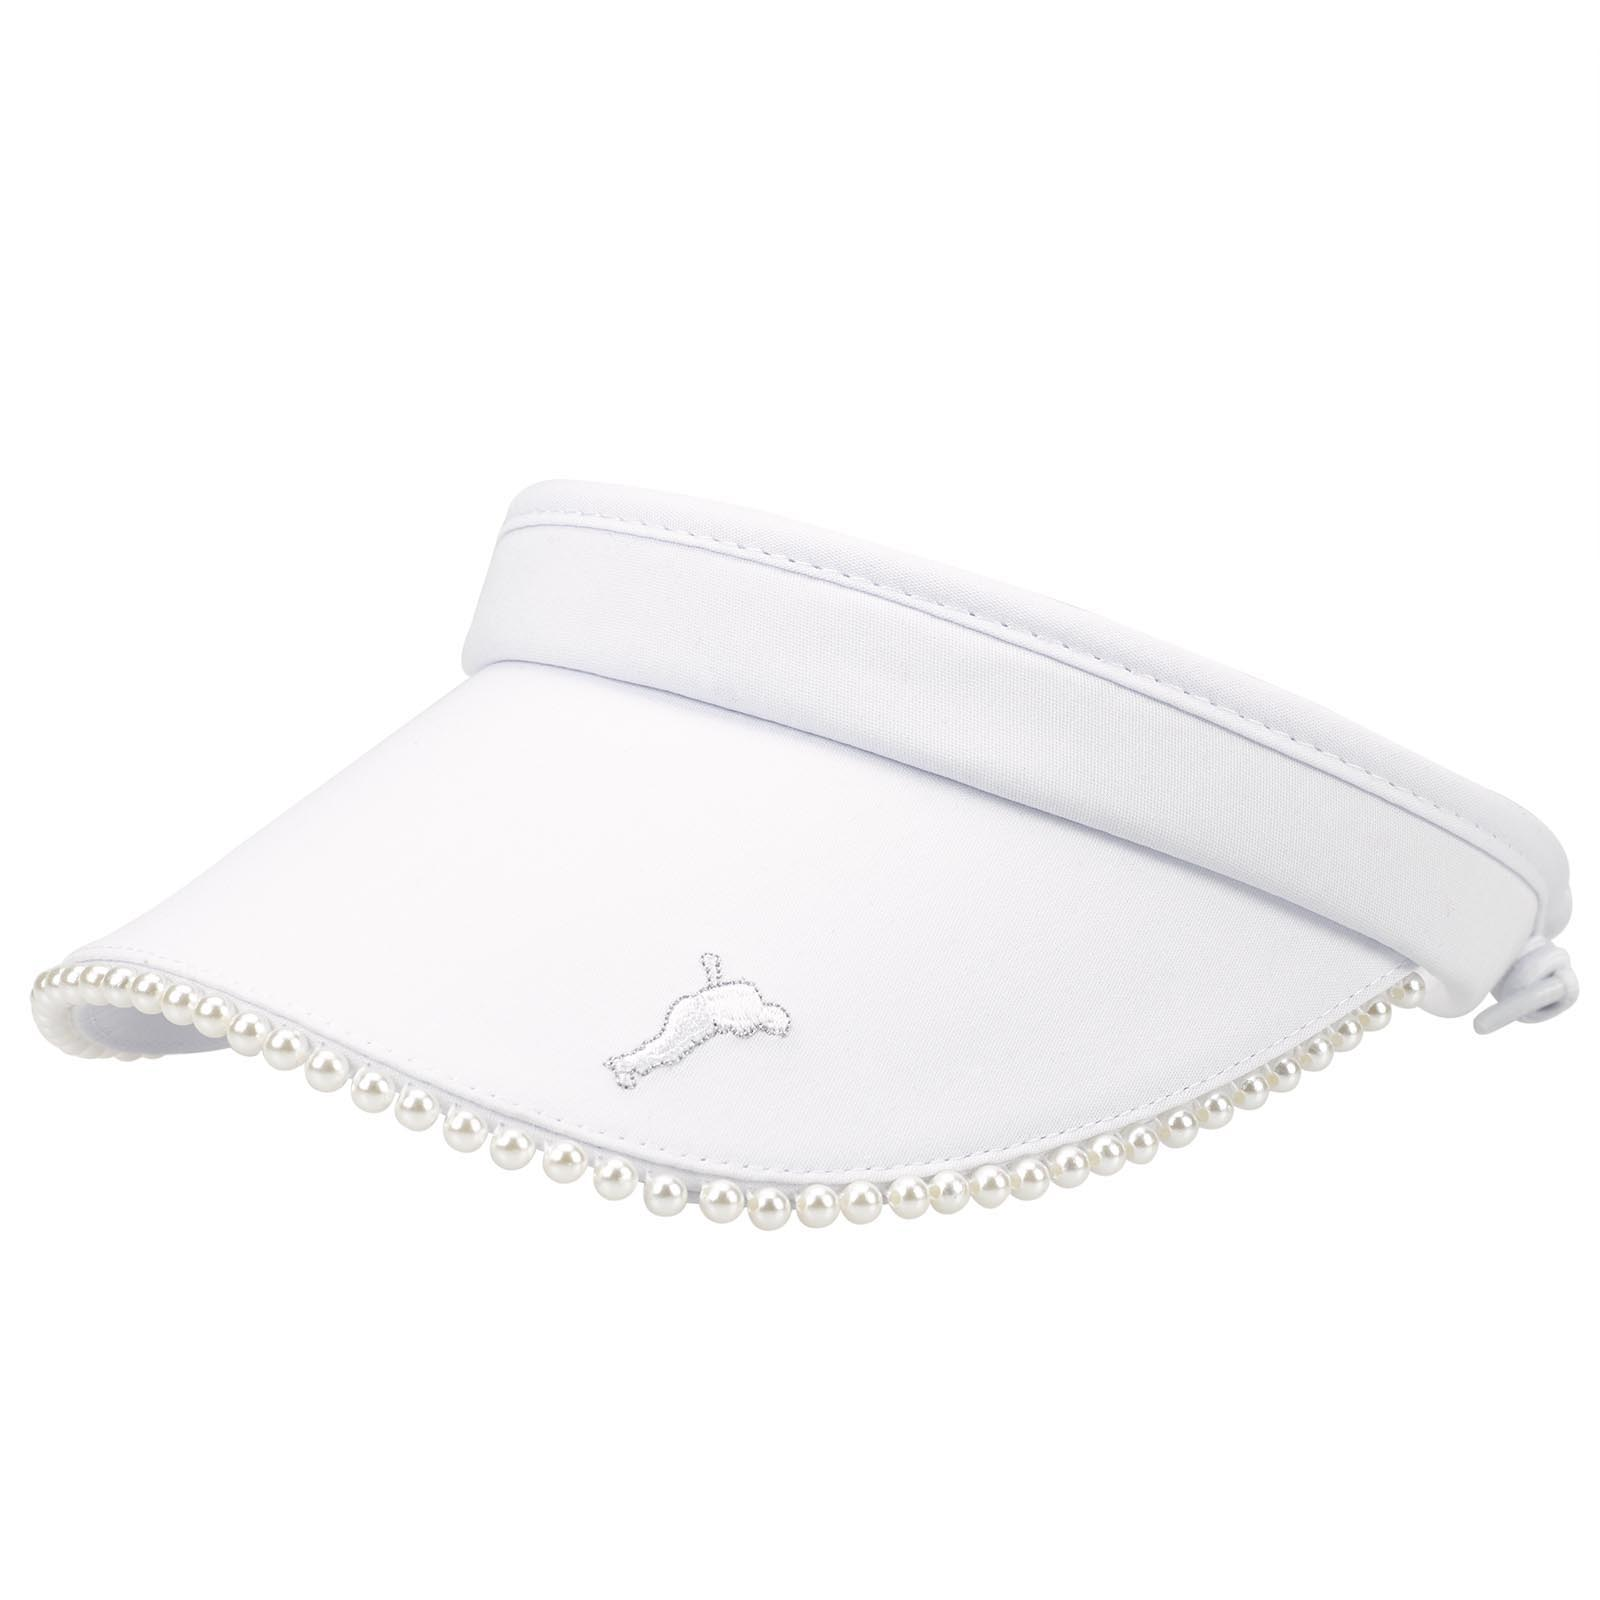 Ladies' beaded cable golf visor. More than an accessory!